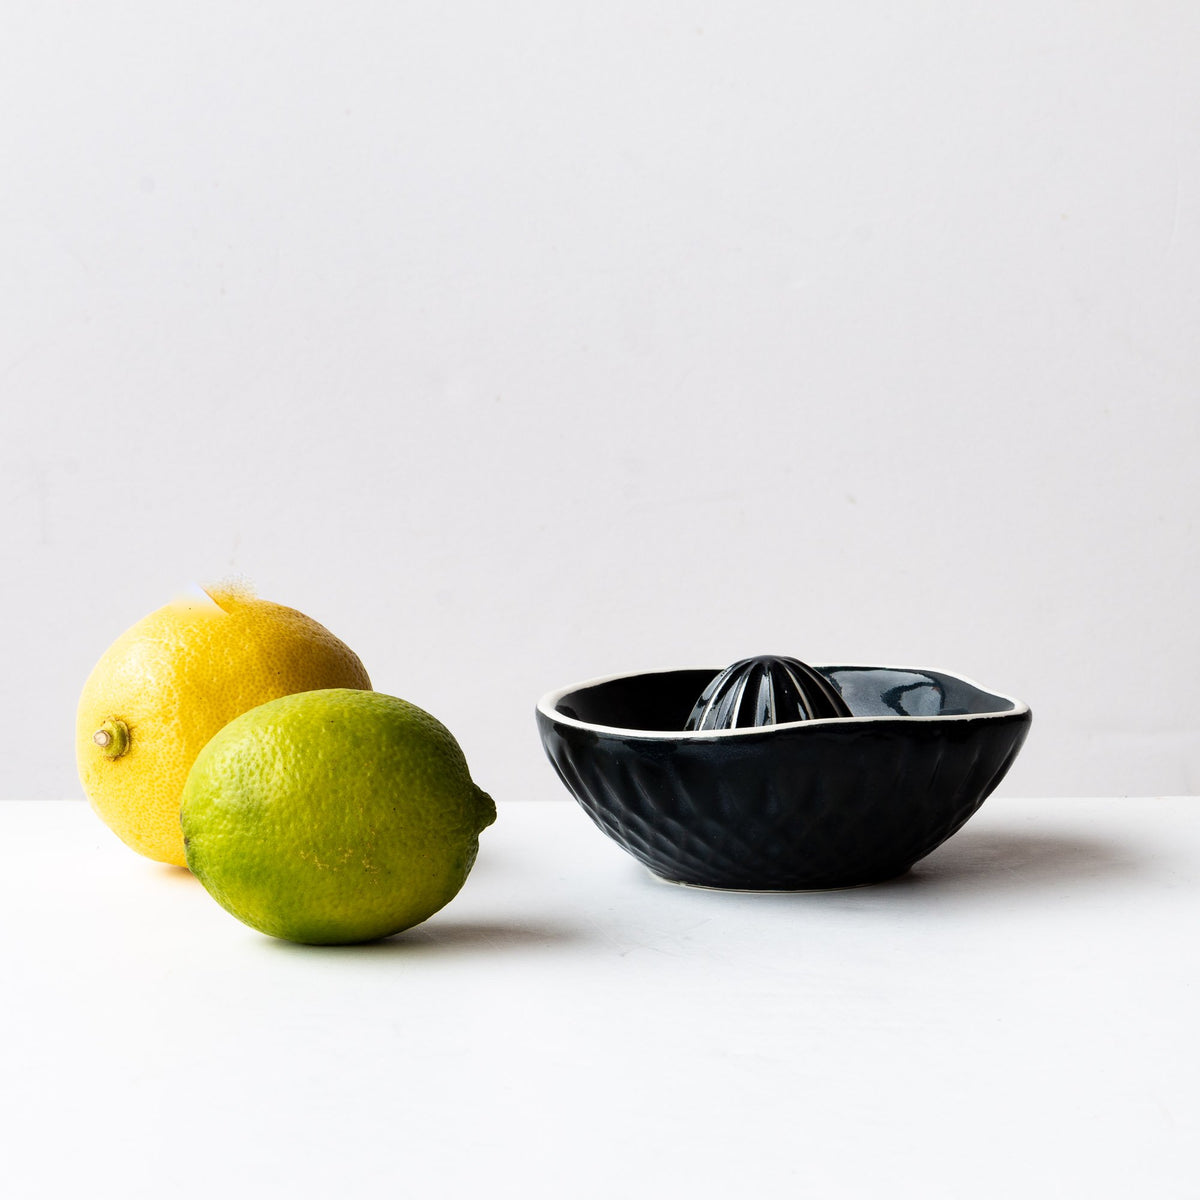 Black & White Handcrafted Small Porcelain Citrus Juicer - Sold by Chic & Basta